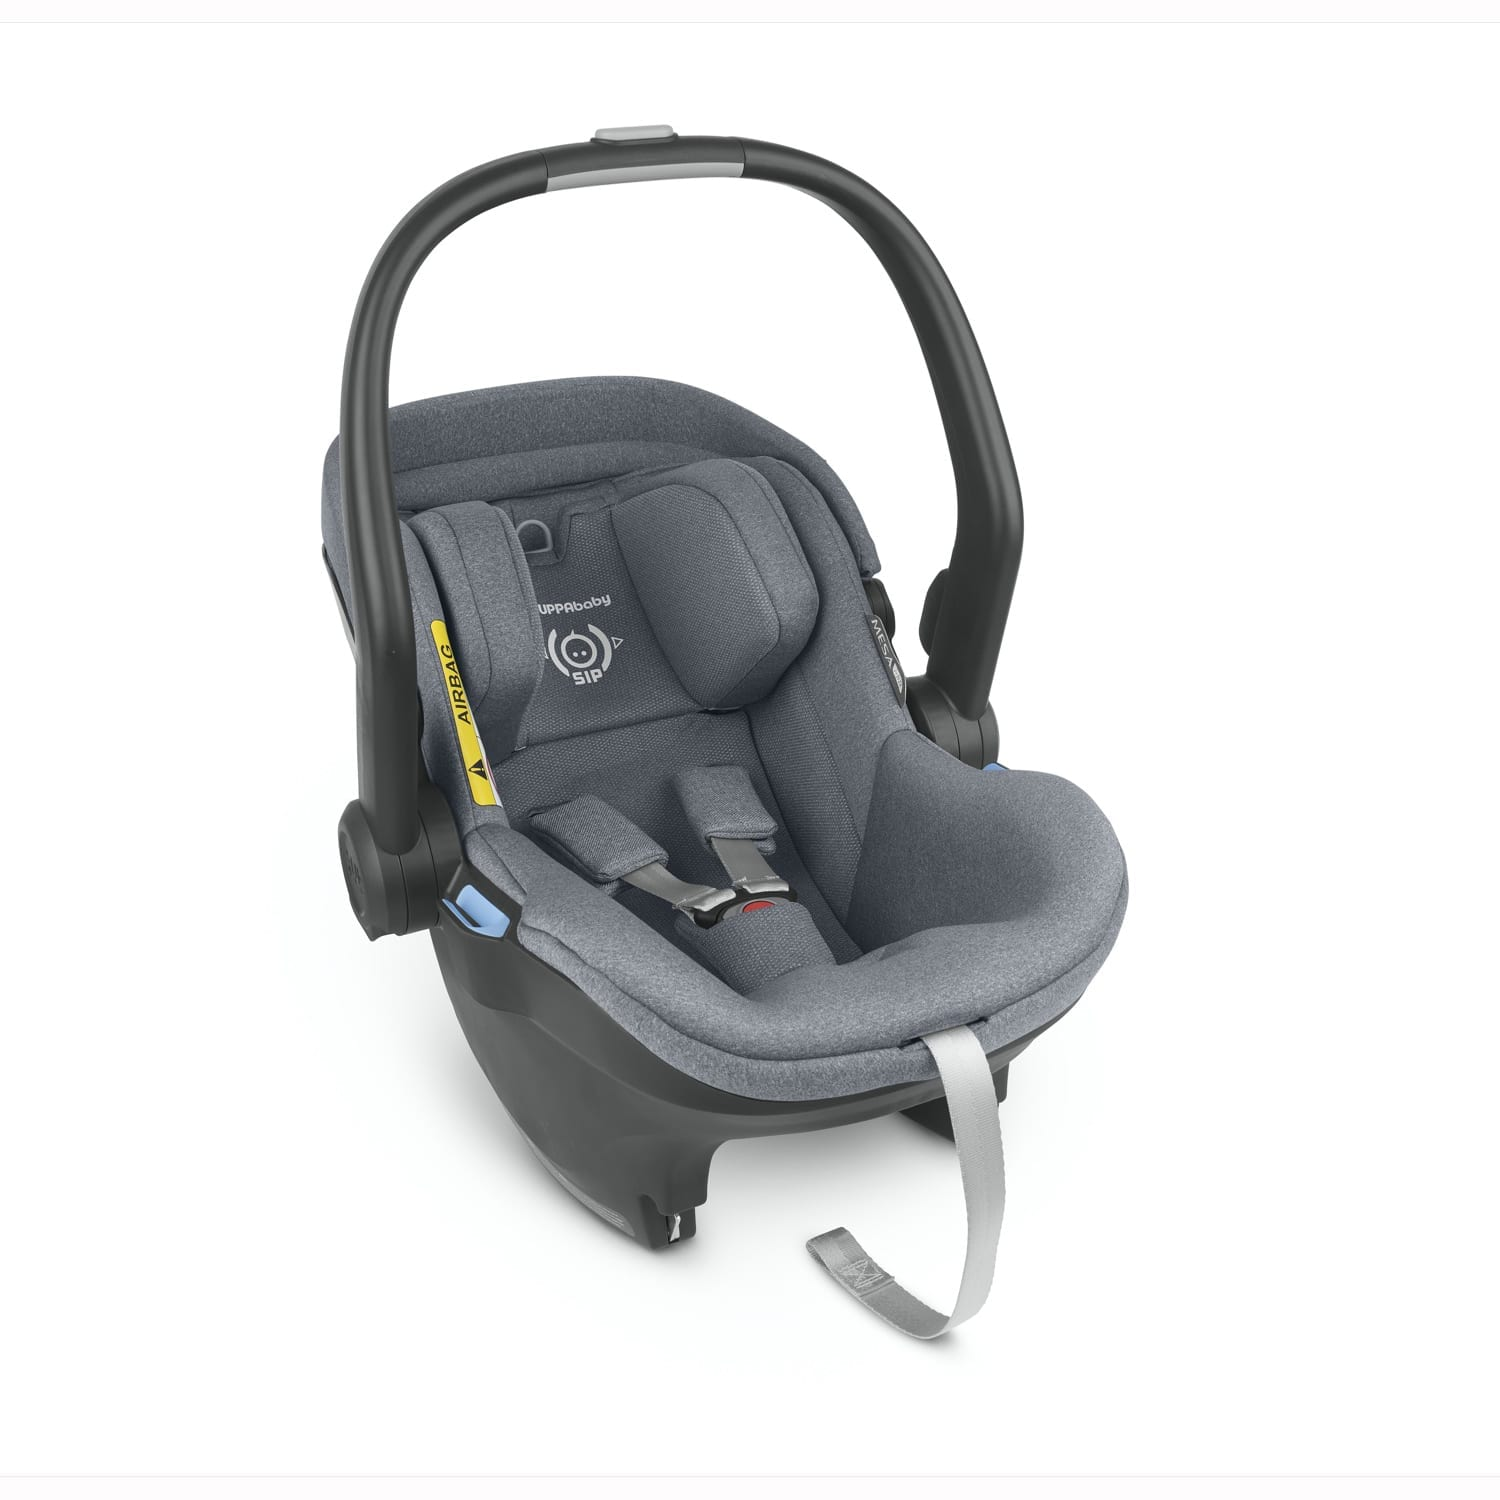 UPPABaby MESA i-Size Infant Car Seat -GREGORY product image